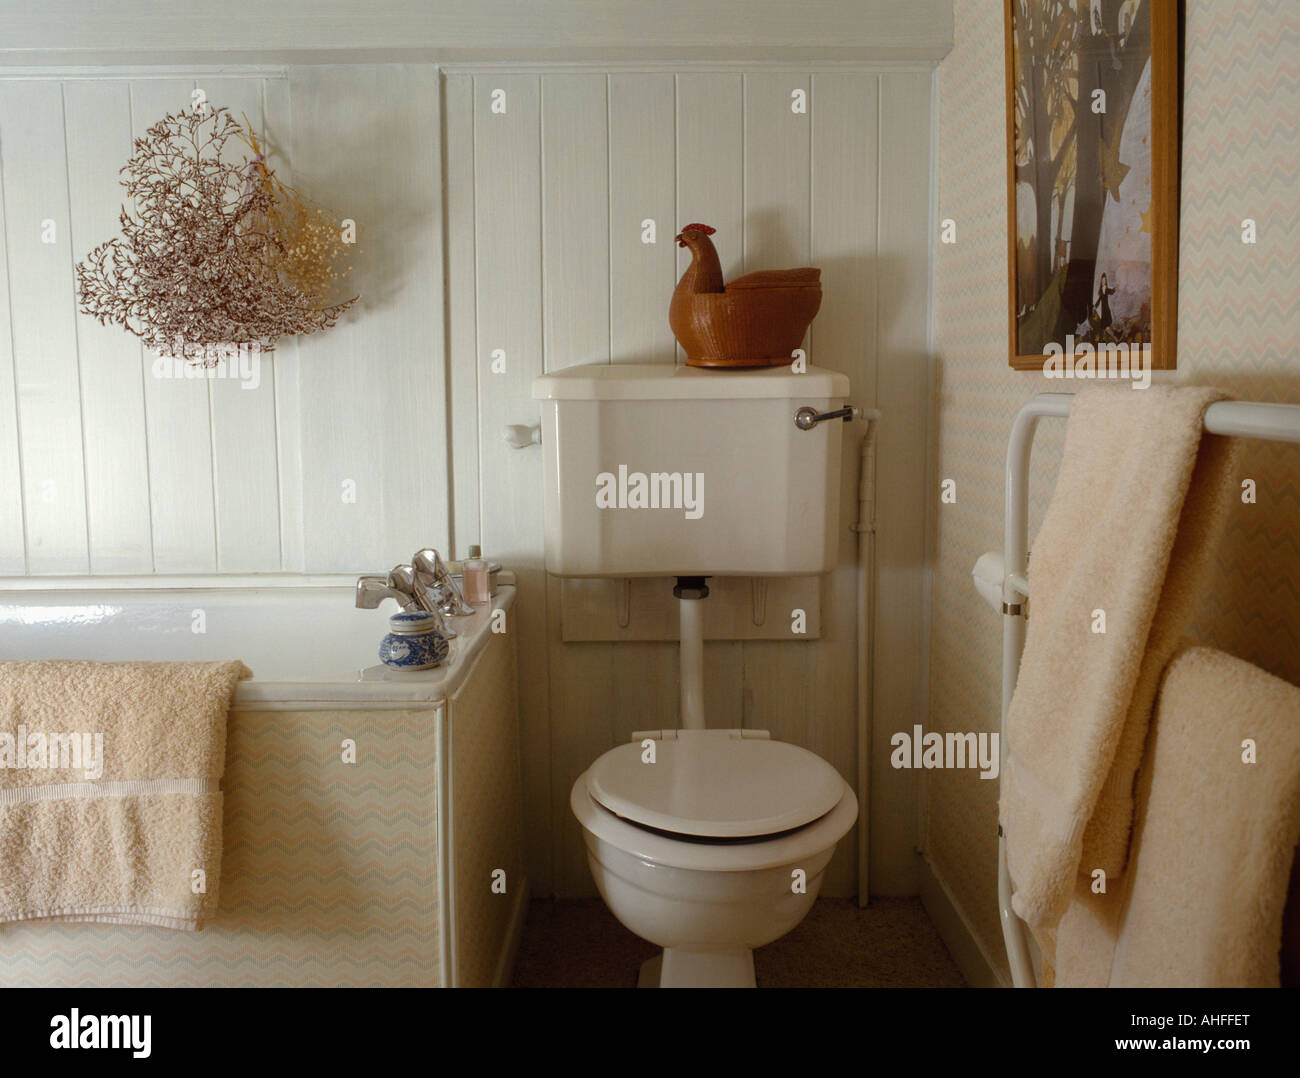 cloakrooms stock photos cloakrooms stock images alamy. Black Bedroom Furniture Sets. Home Design Ideas